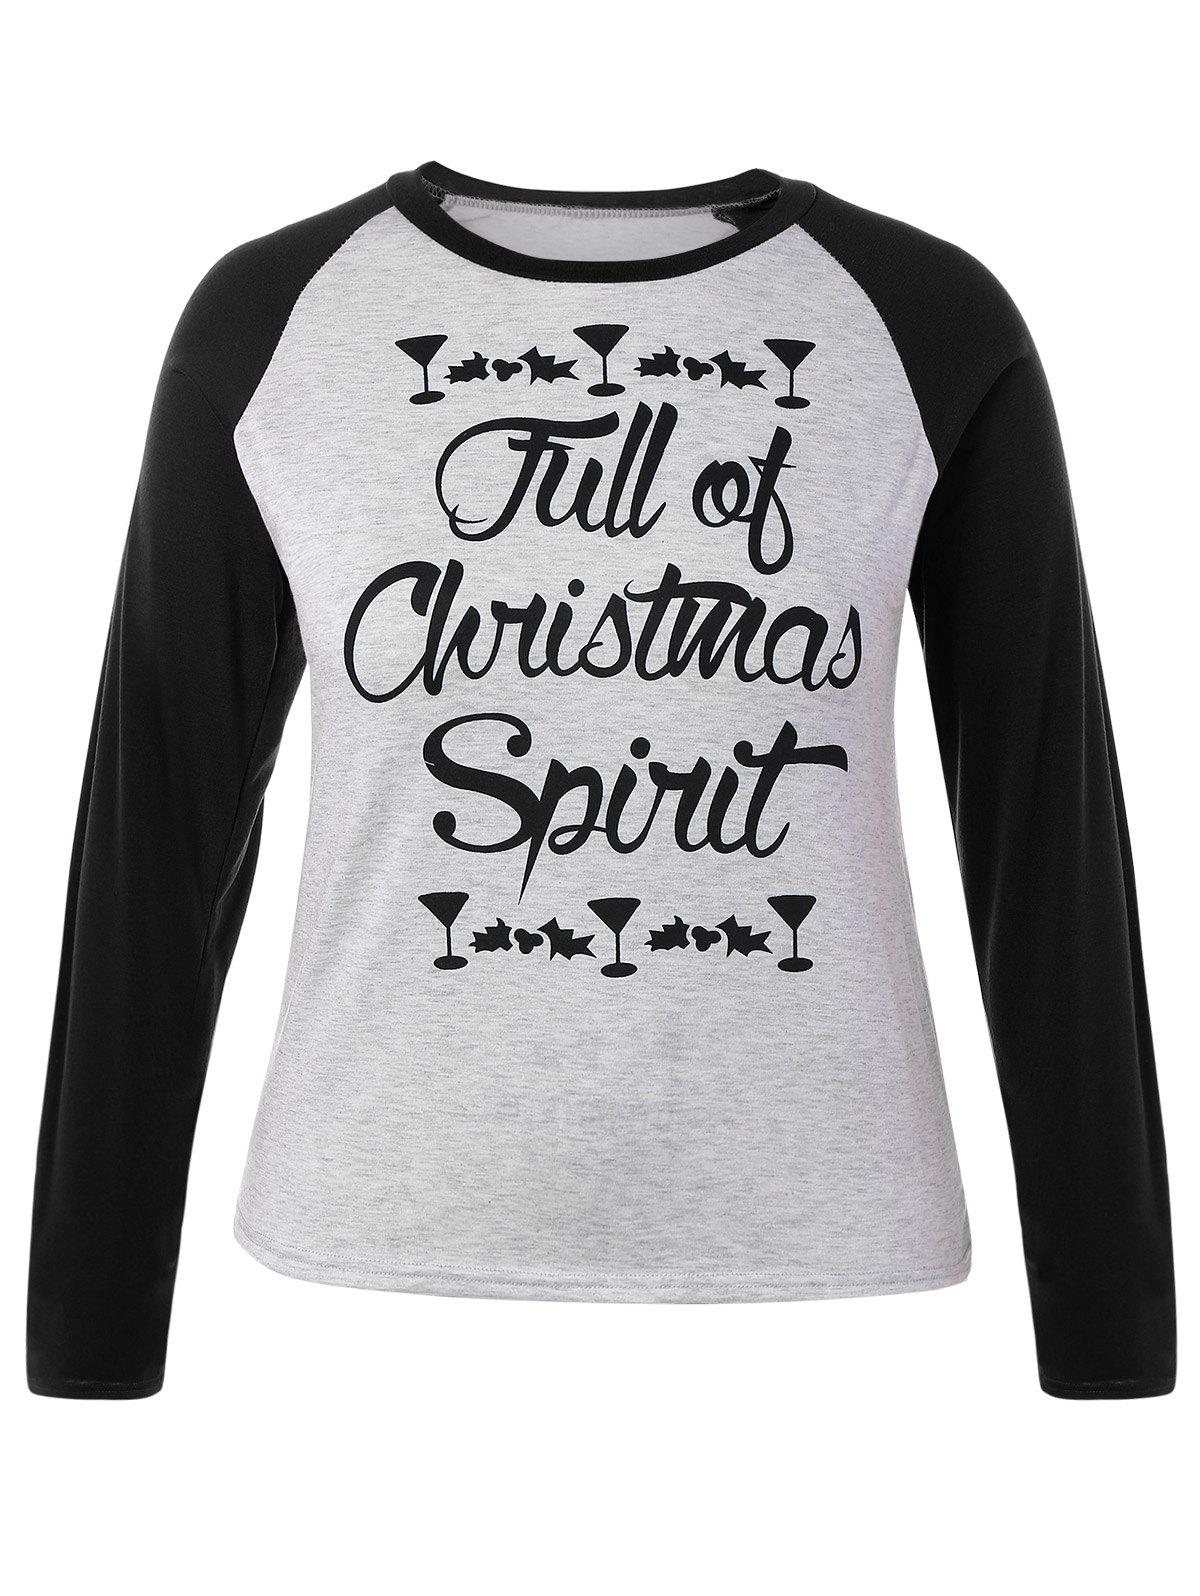 Plus Size Raglan Sleeve Christmas T-Shirt christmas spirit graphic plus size raglan sleeve t shirt